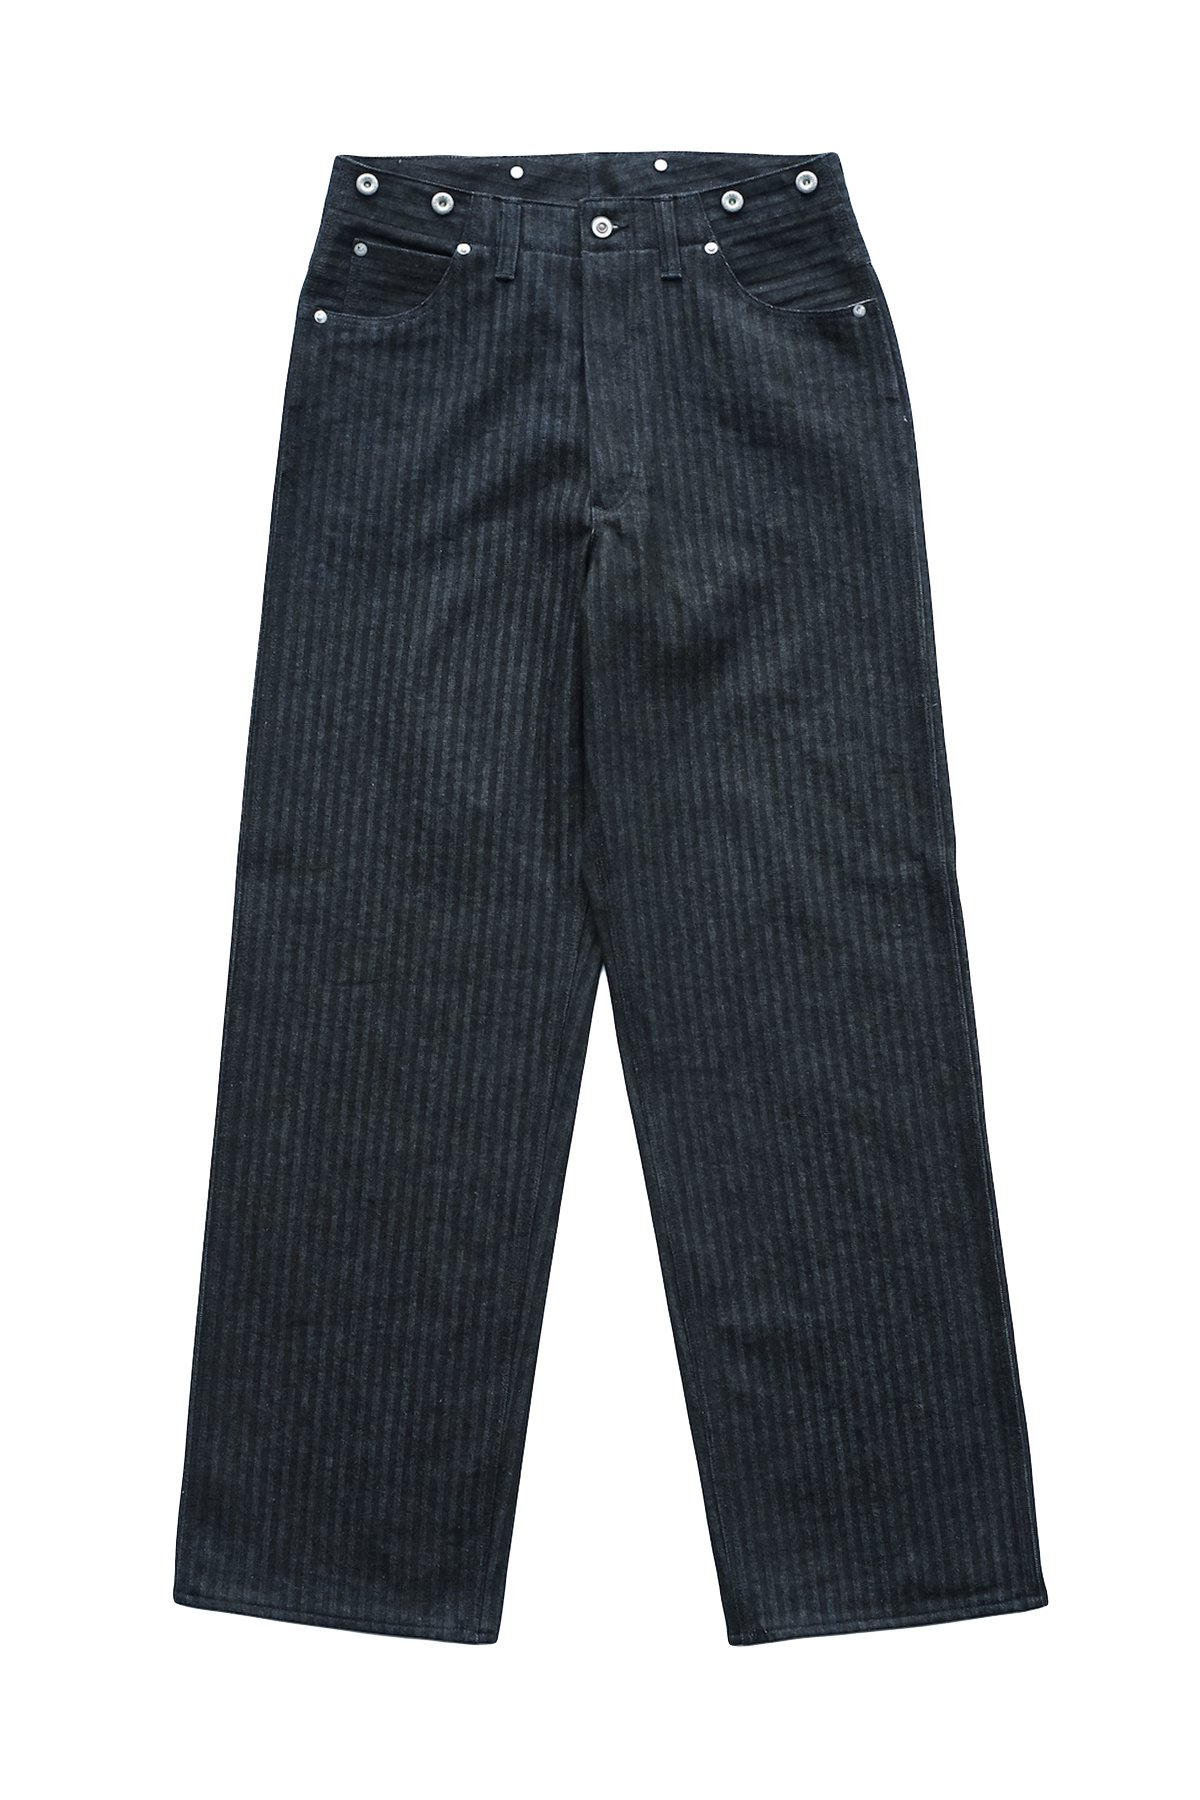 OLD JOE - TRIPPLE NEEDLE BELTLESS JEANS INDIGO HERRINGBONE - PRICE 28,600 tax-in